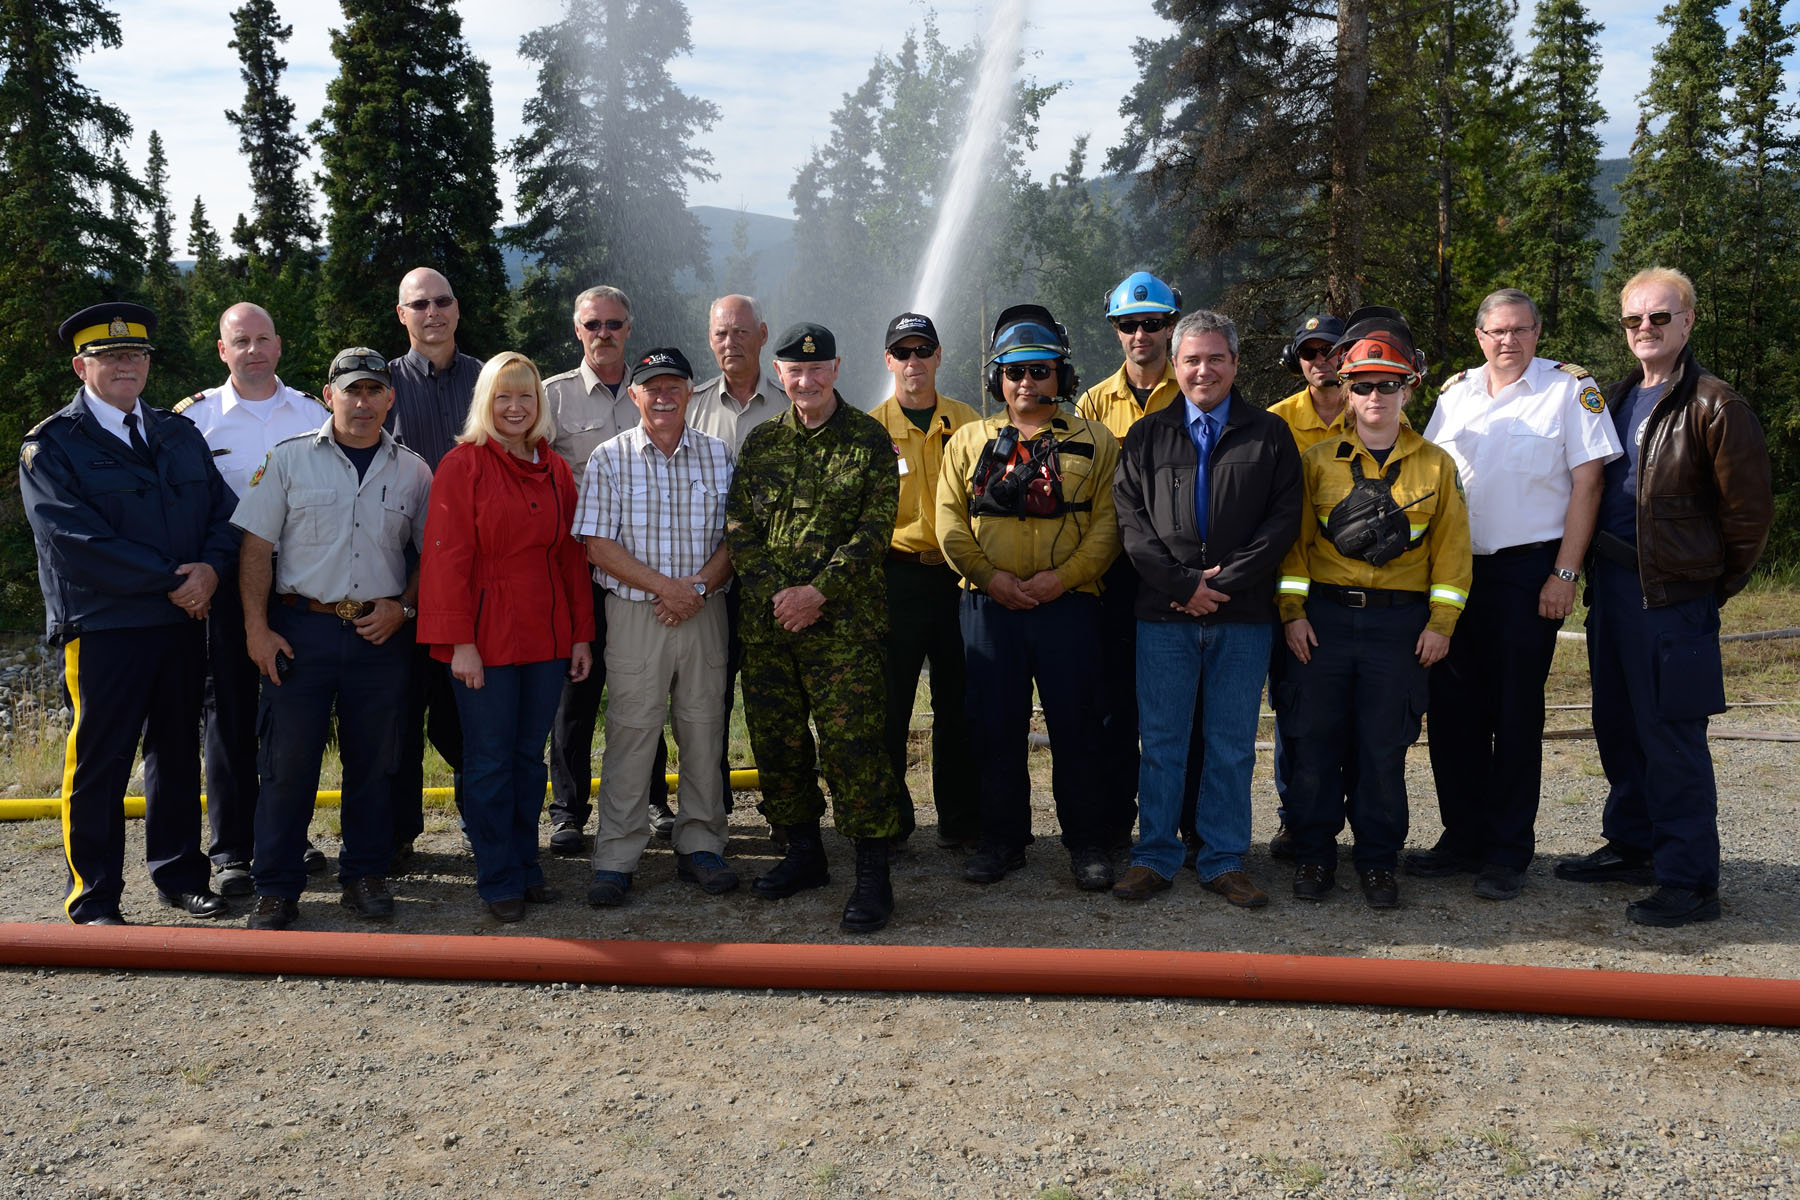 His Excellency posed with territorial and municipal authorities also participating in Operation NANOOK.